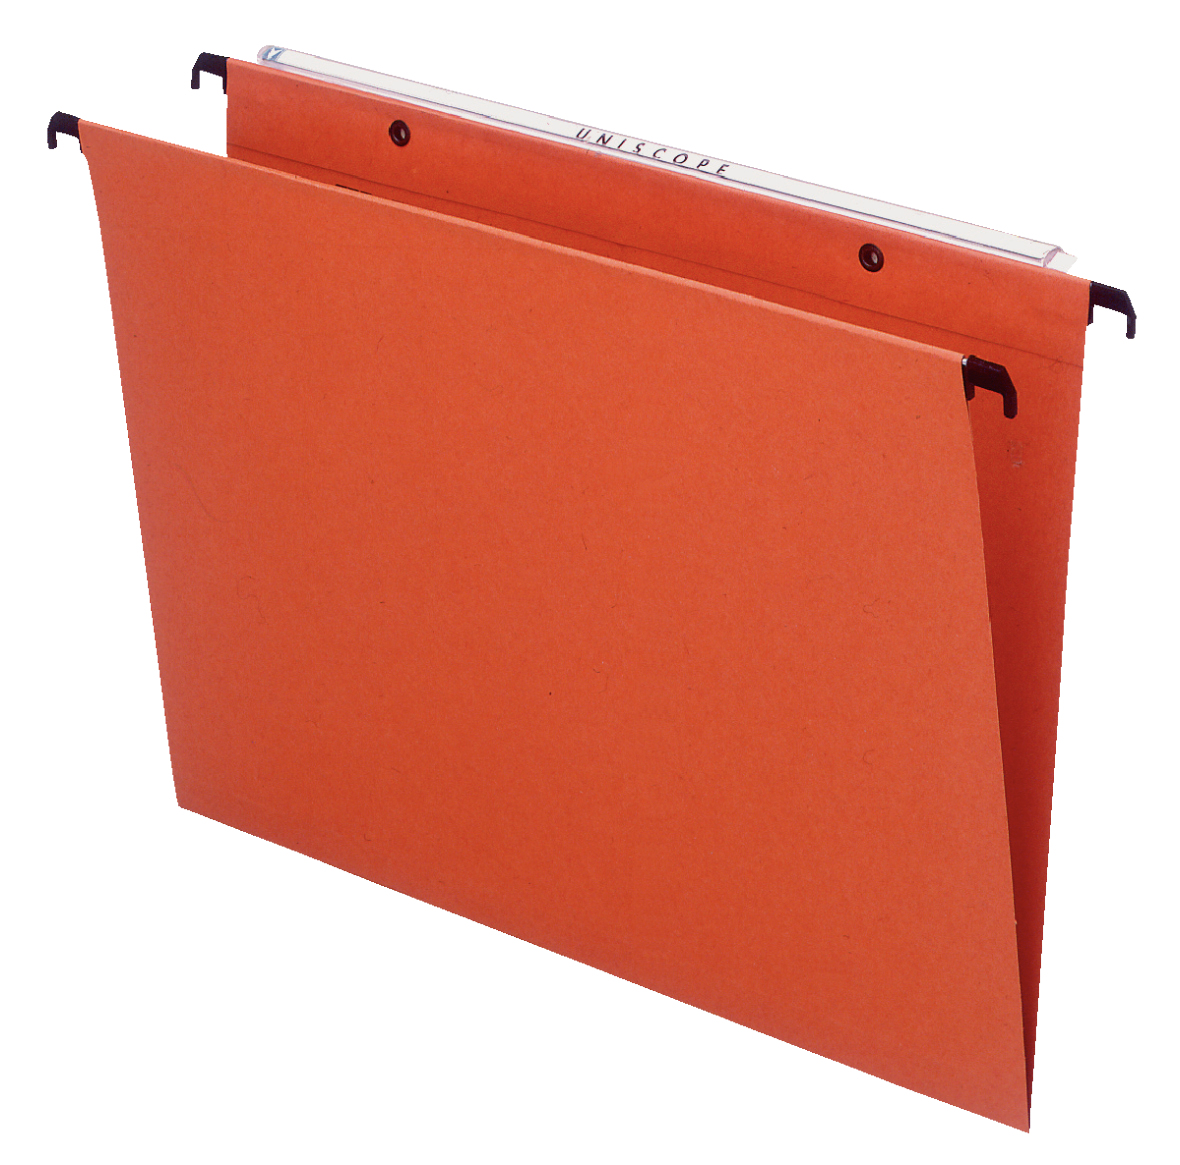 10402 esselte Esselte Orgarex Suspension File F/s Orange 10402 (pk50) - AD01